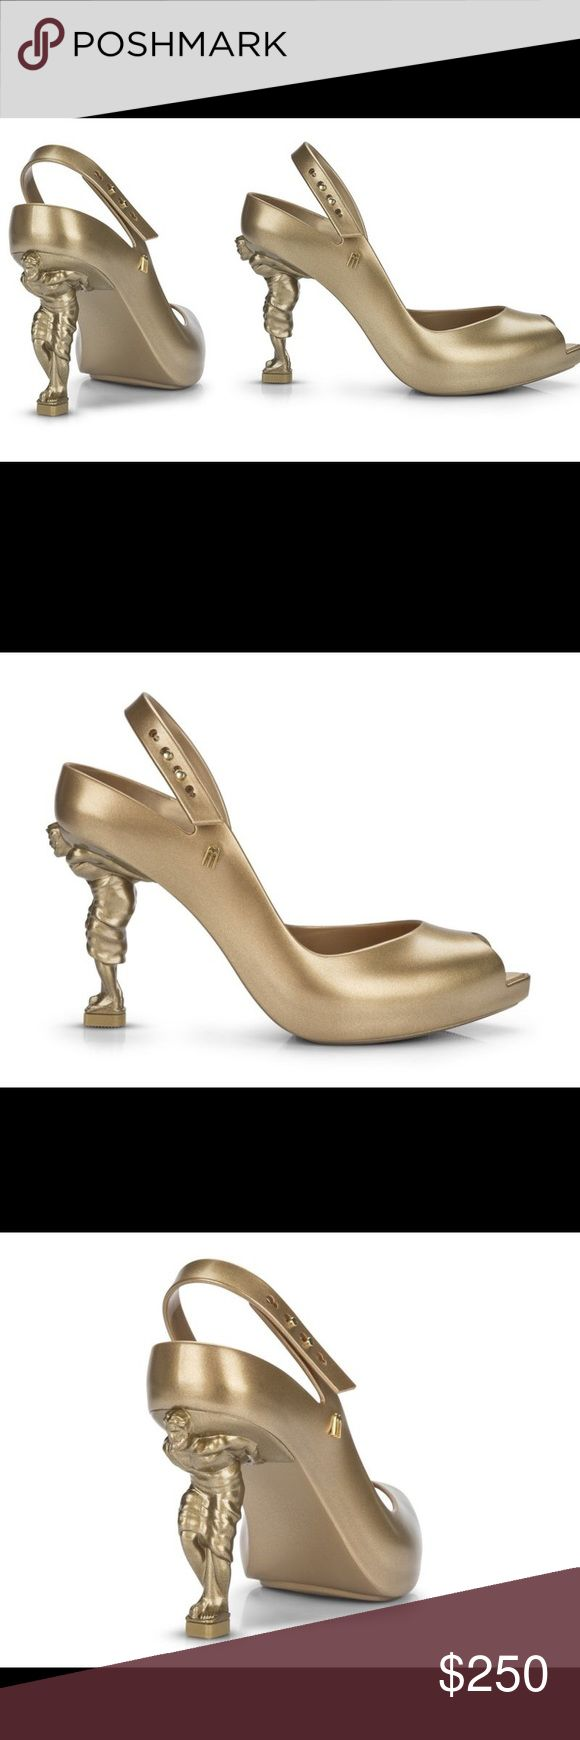 NEW Melissa+Sebastian Errazuriz gold digger shoes 100% authentic, without box. Brand new without tags, made in Brazil. Material: PVC Melissa Shoes Heels